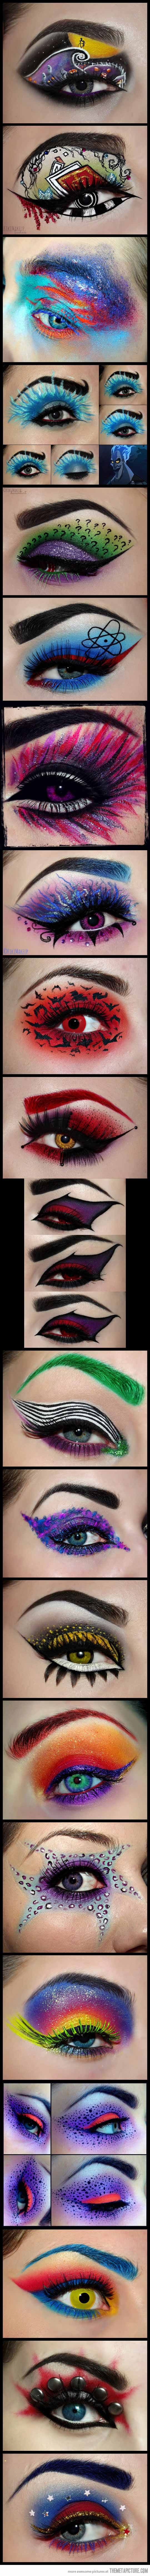 Movie makeup at it's most unique…fun ideas different cosplays, I can see how some of these would be incredible for steampunk but I have no idea how you'd actually do them!